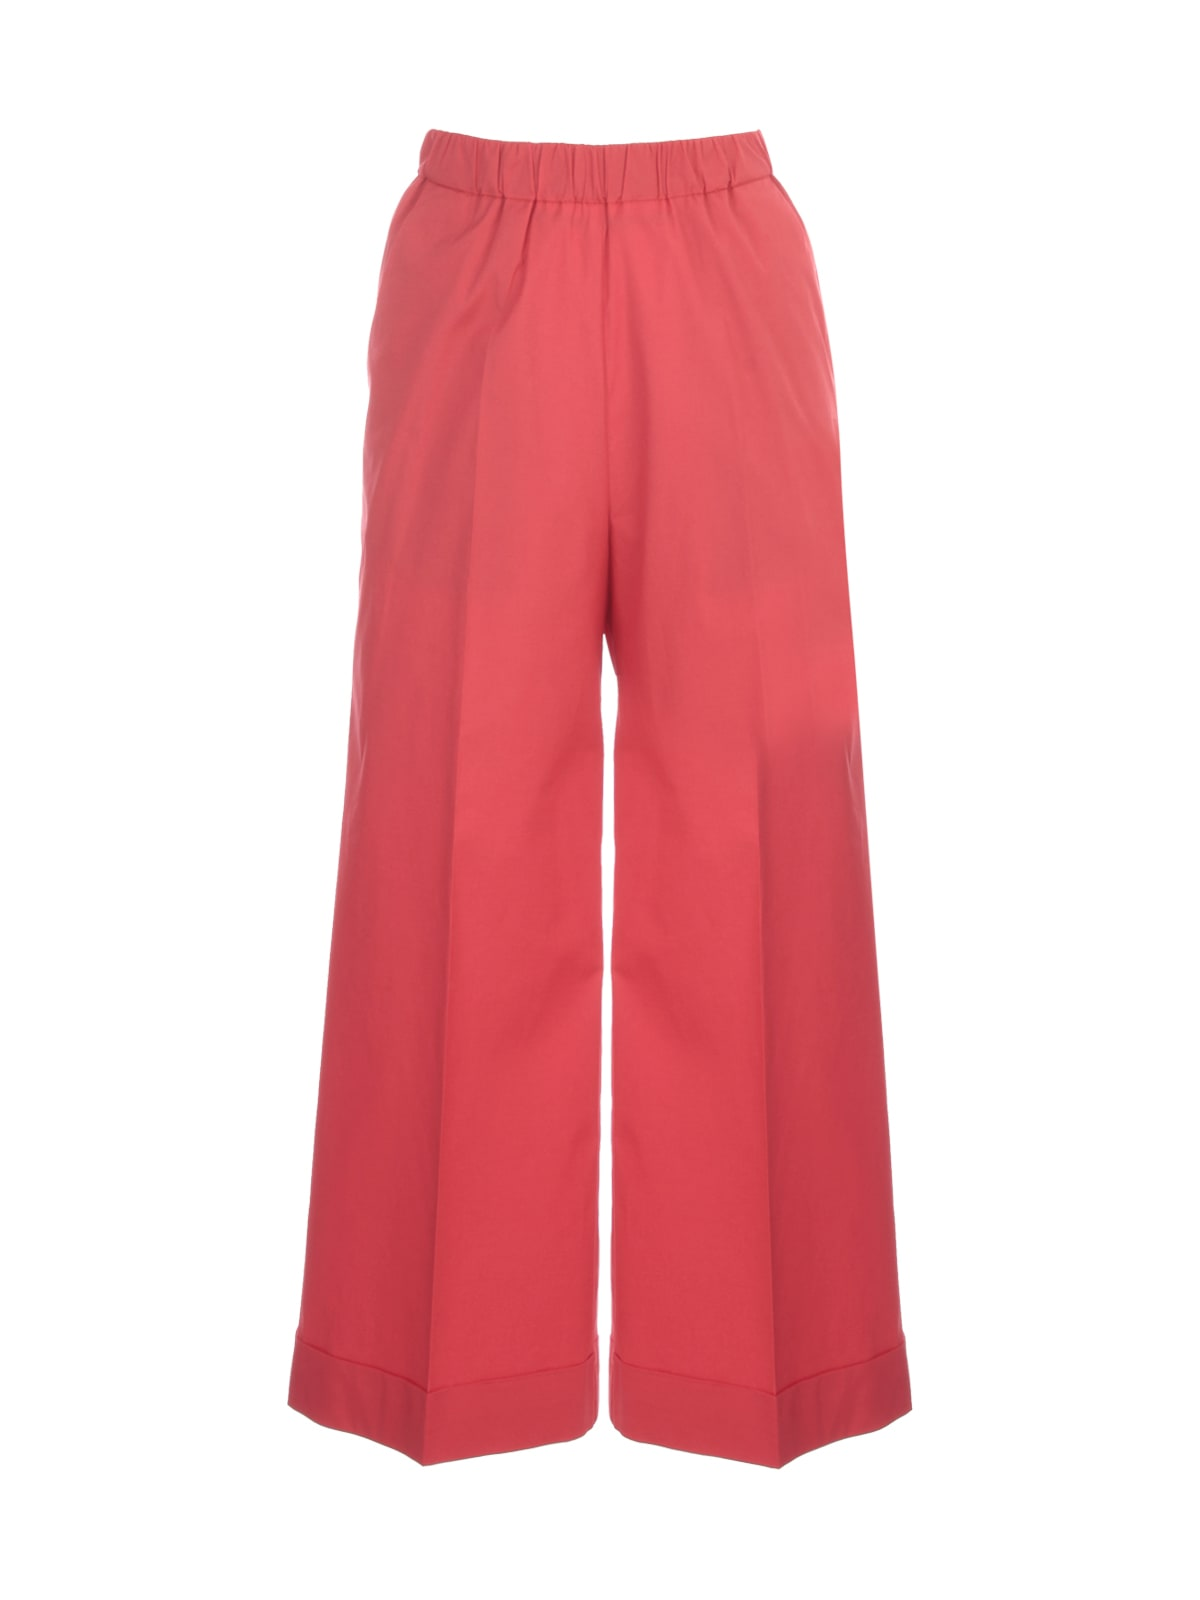 Cotton Stretch Straight Cropped Elastic Pants